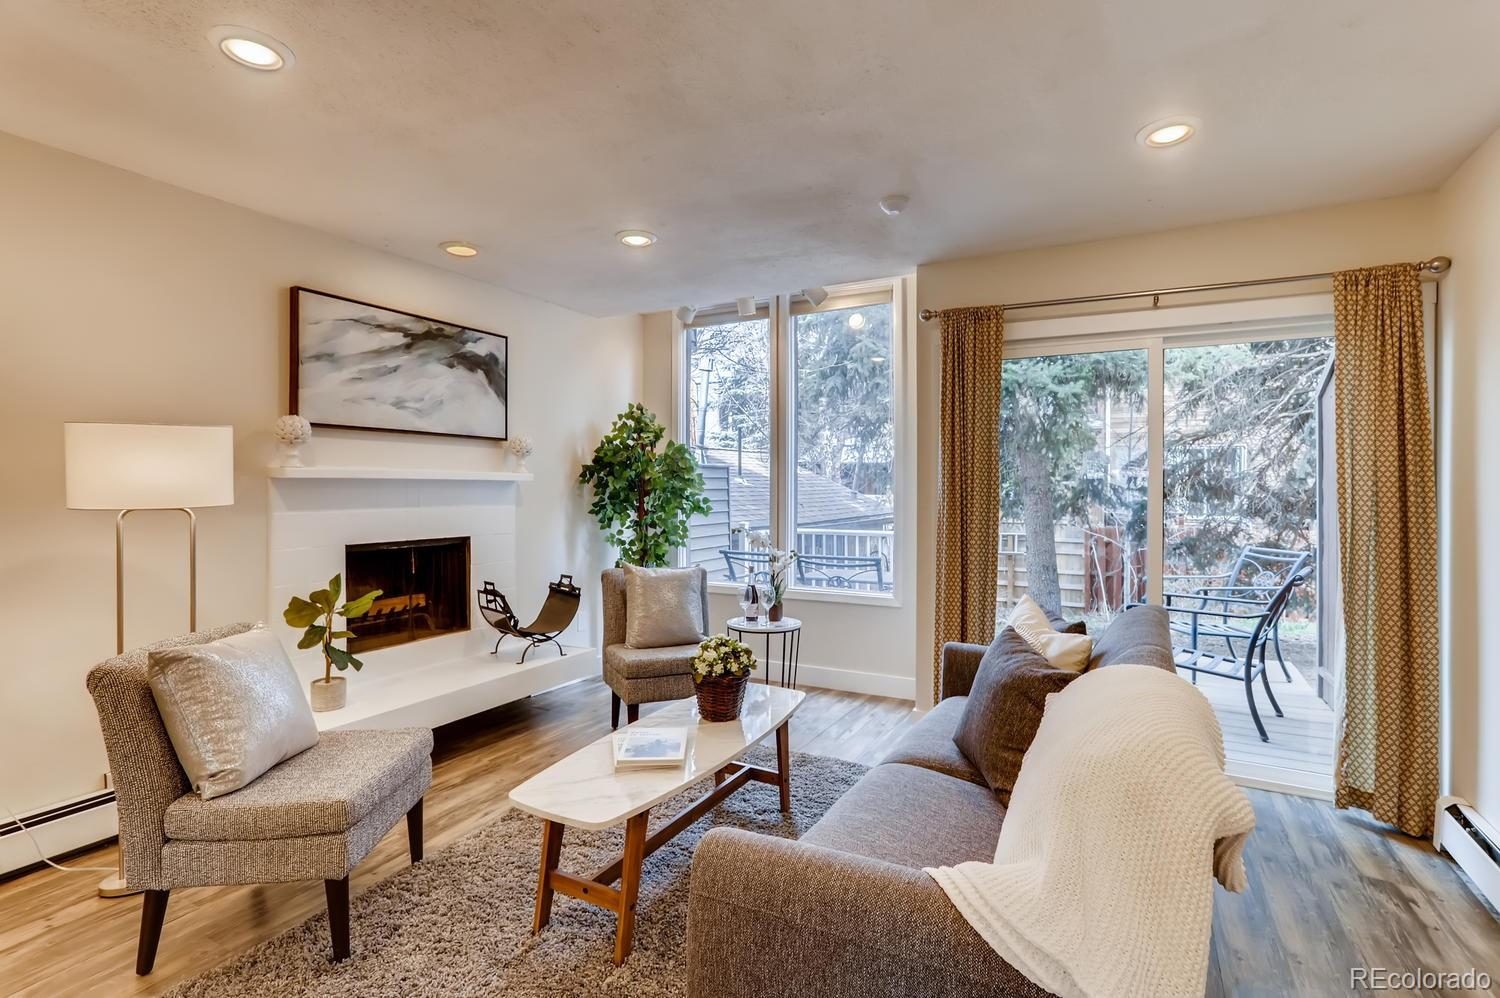 MLS# 4298987 - 3 - 350 Arapahoe Avenue #21, Boulder, CO 80302